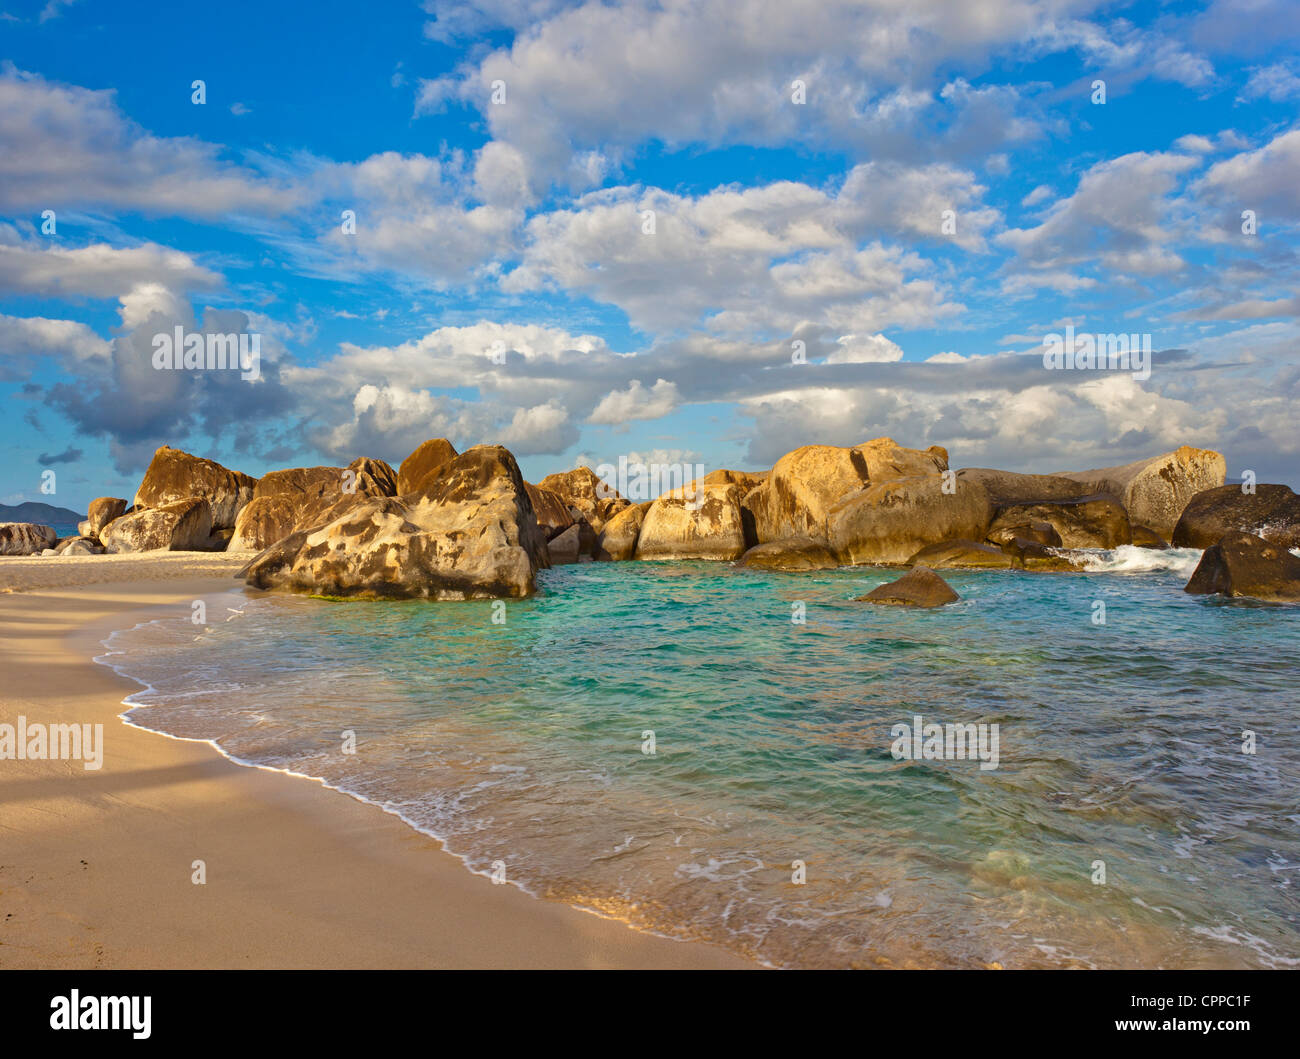 Virgin Gorda, British Virgin Islands in the Caribbean Protected pool surrounded by granite boulders on the beach - Stock Image